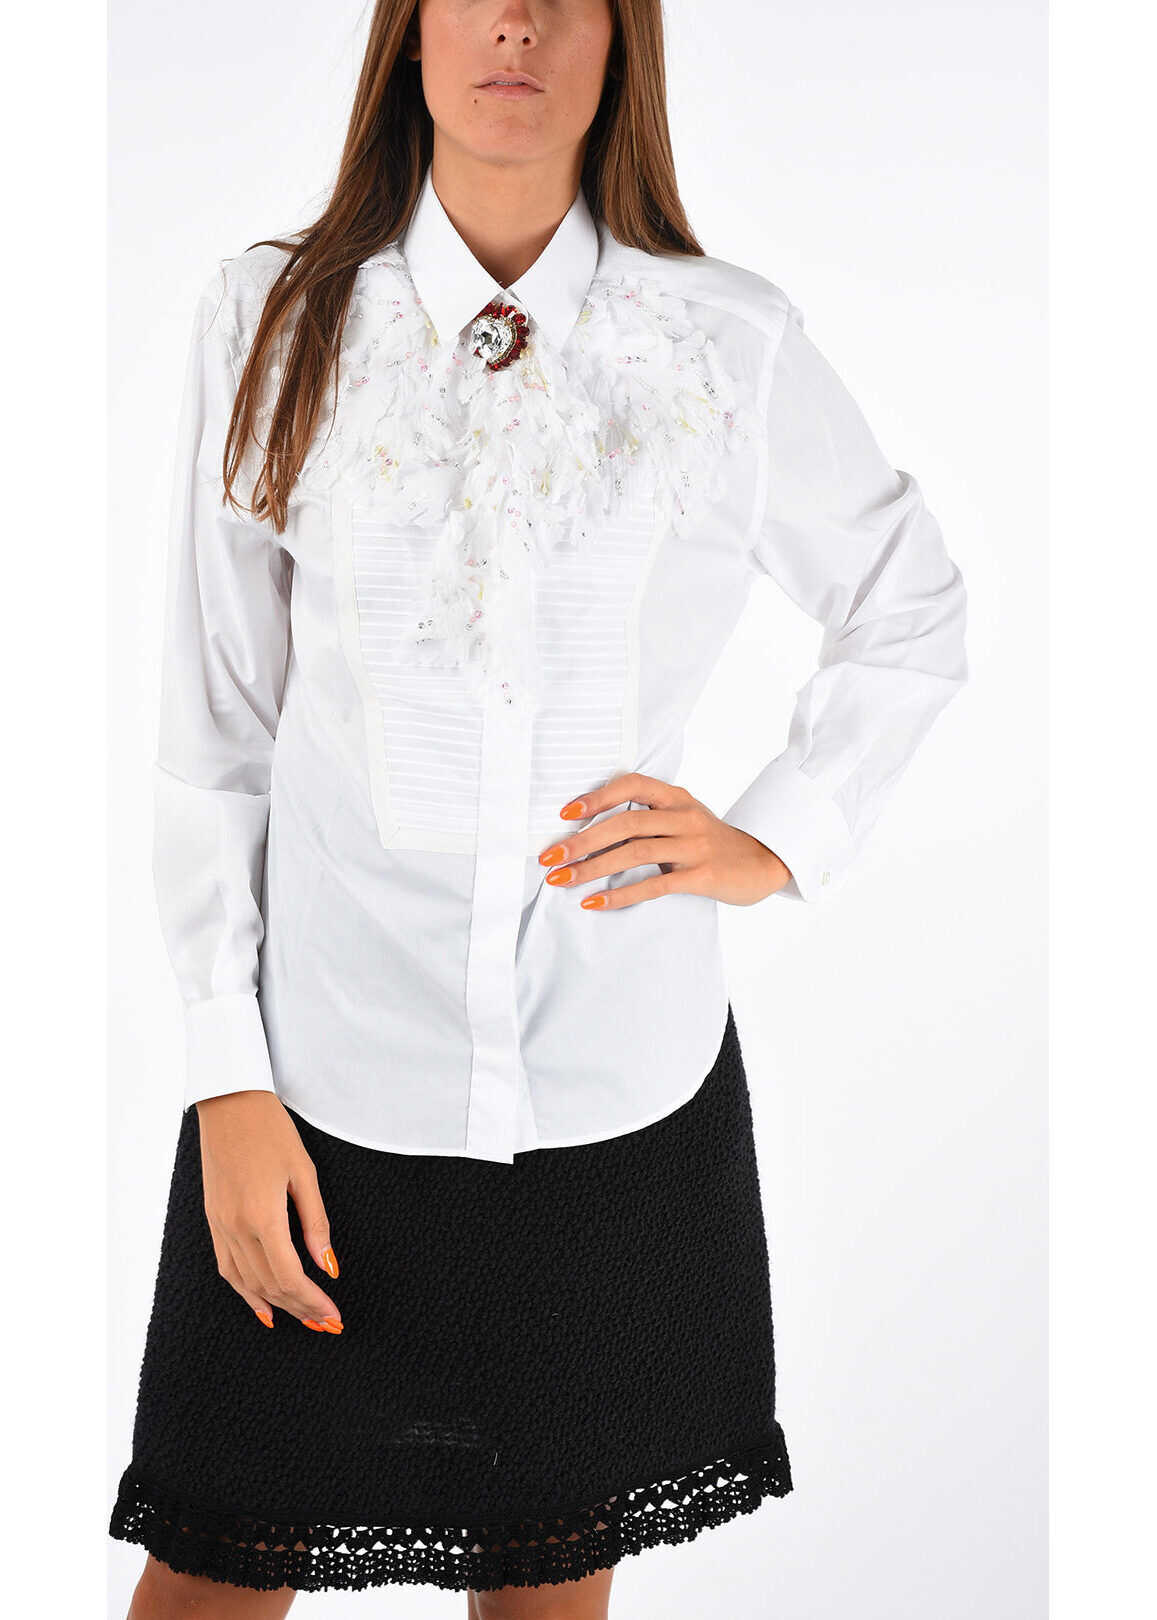 Dolce & Gabbana Silk and Cotton Shirt with Jewel Embroidery WHITE